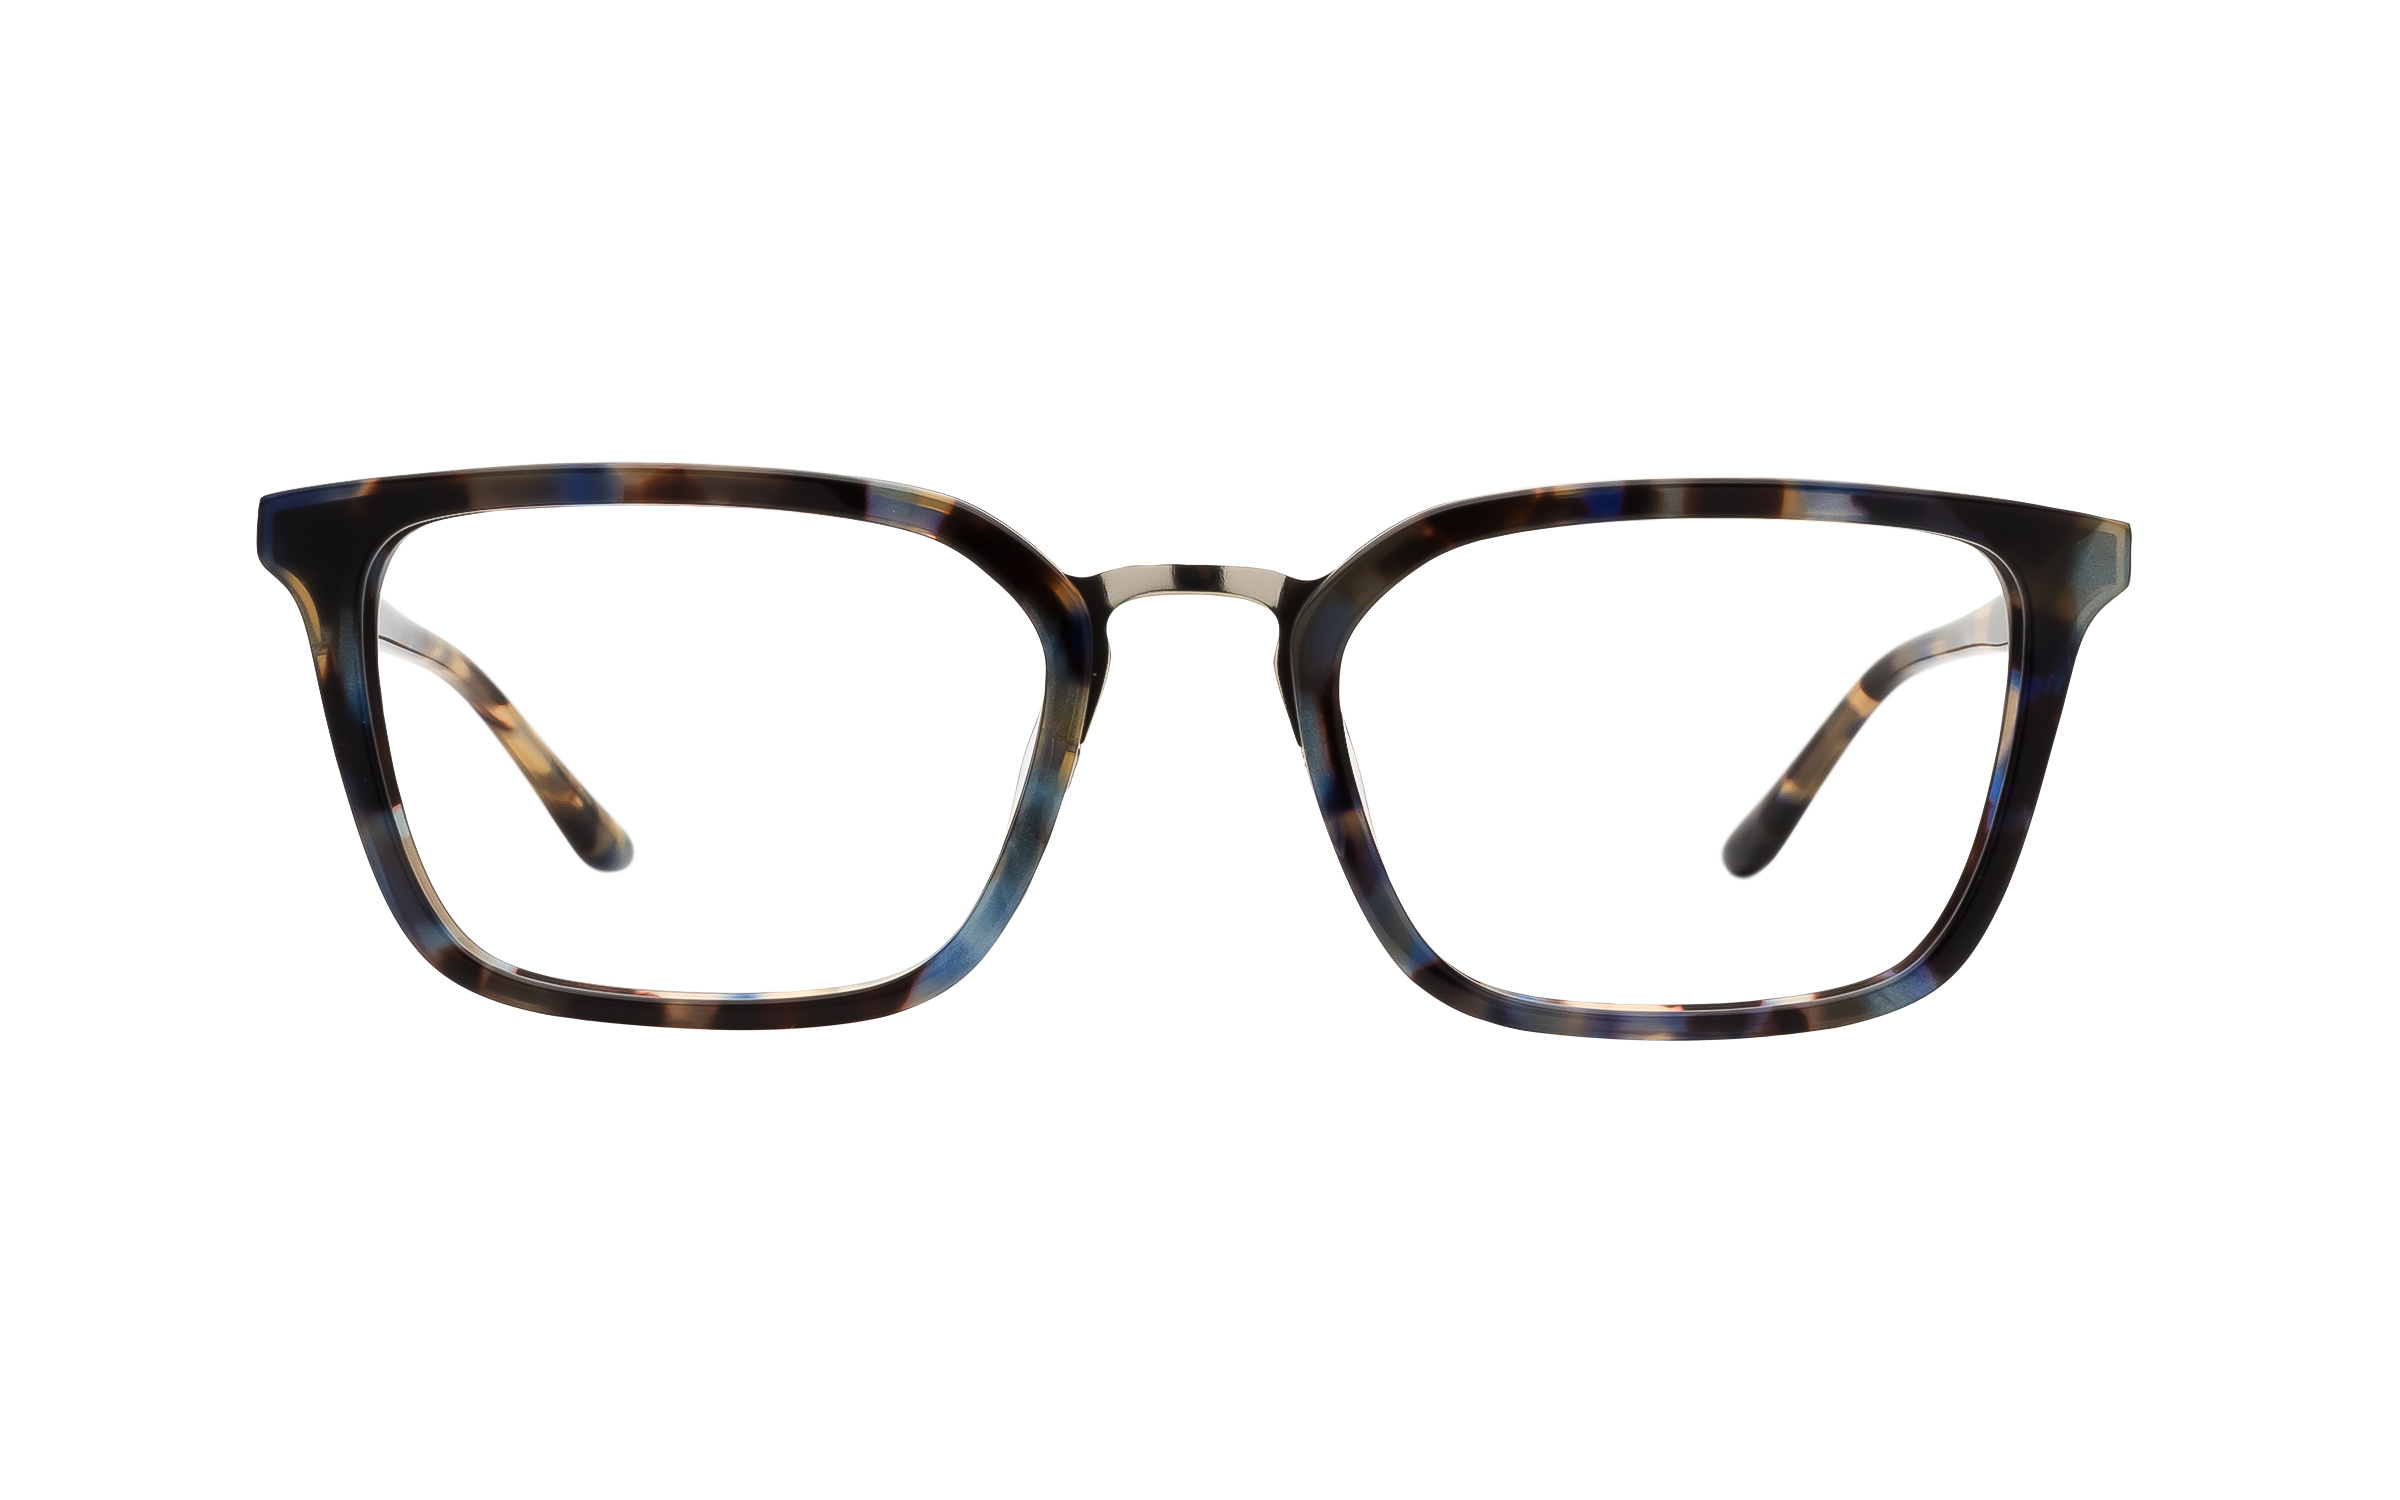 Kam Dhillon Women's Glasses Brown/Blue/Tortoise Acetate/Metal Online Clearly